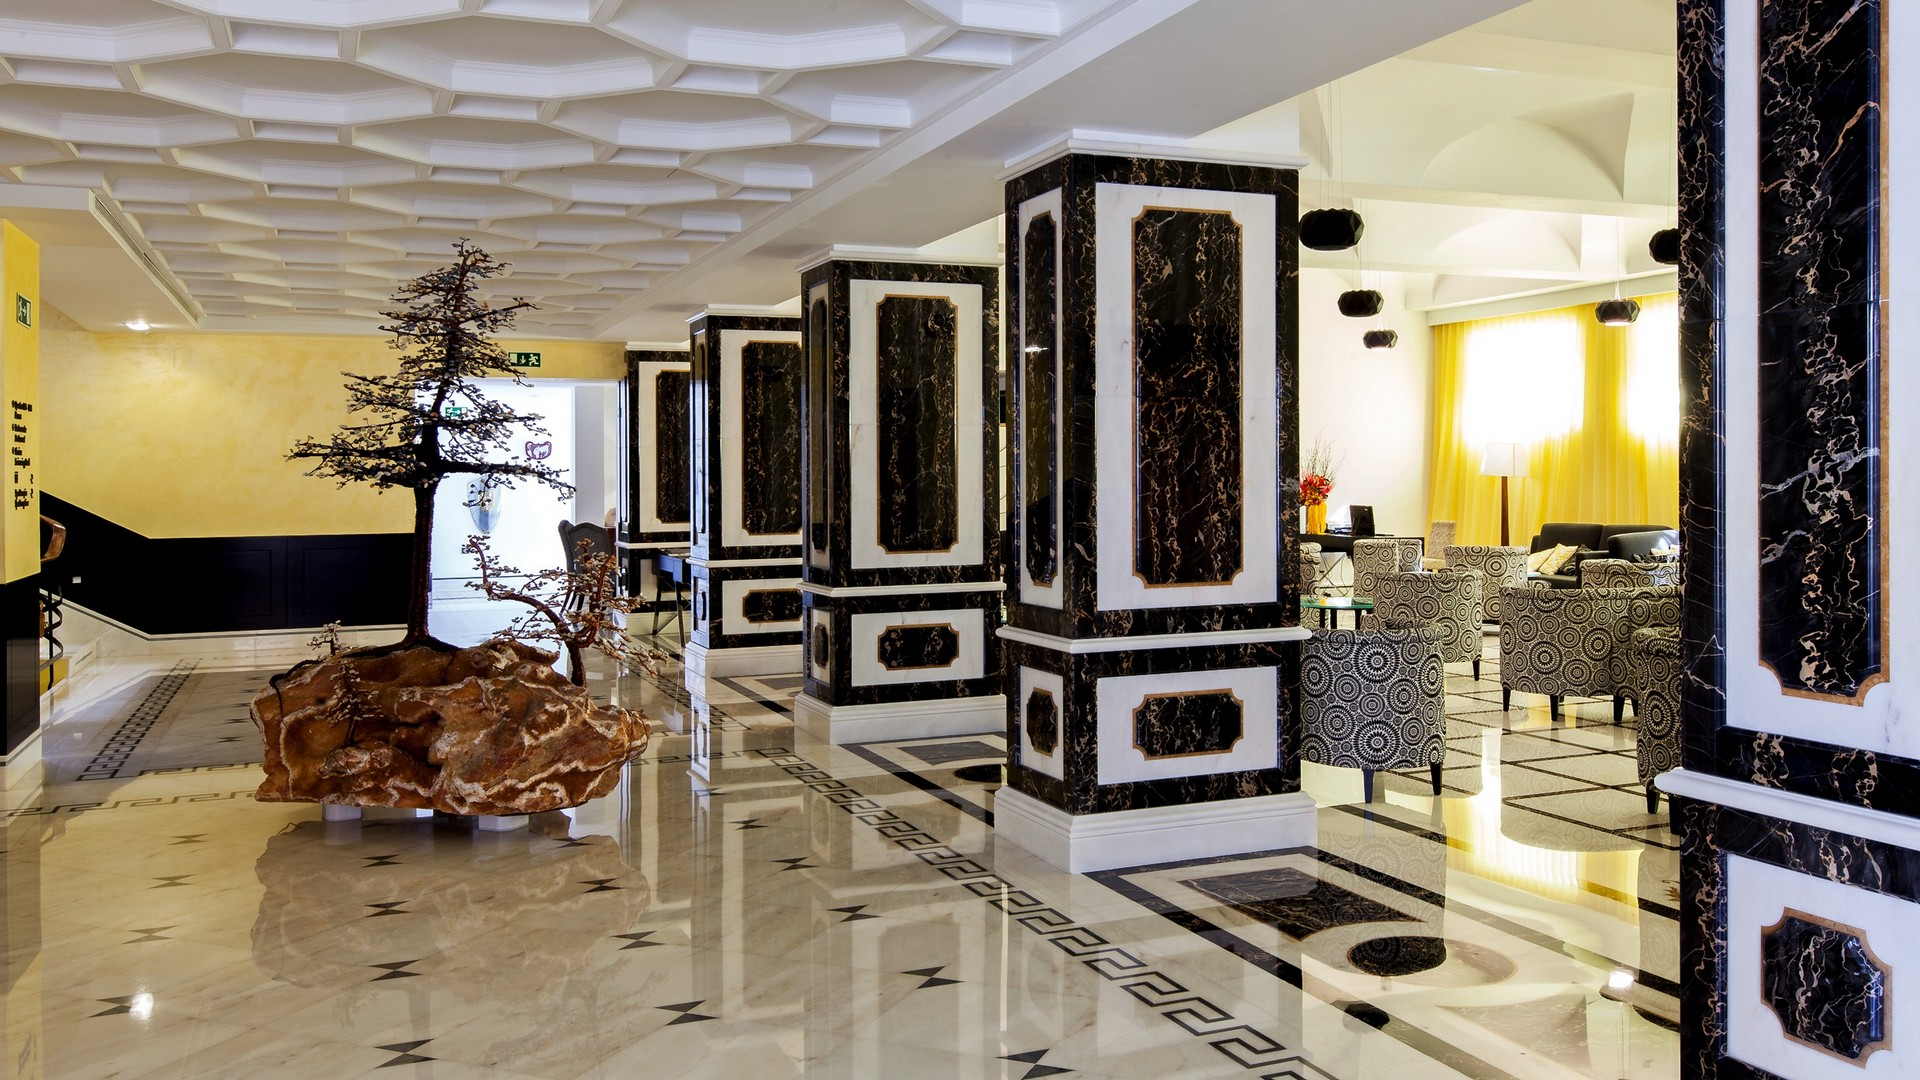 The Best Portuguese Hotels in the South Of Portugal: Alentejo Marmòris Hotel & Spa the best portuguese hotels The Best Portuguese Hotels in the South Of Portugal The Best Portuguese Hotels in the South Of Portugal 2